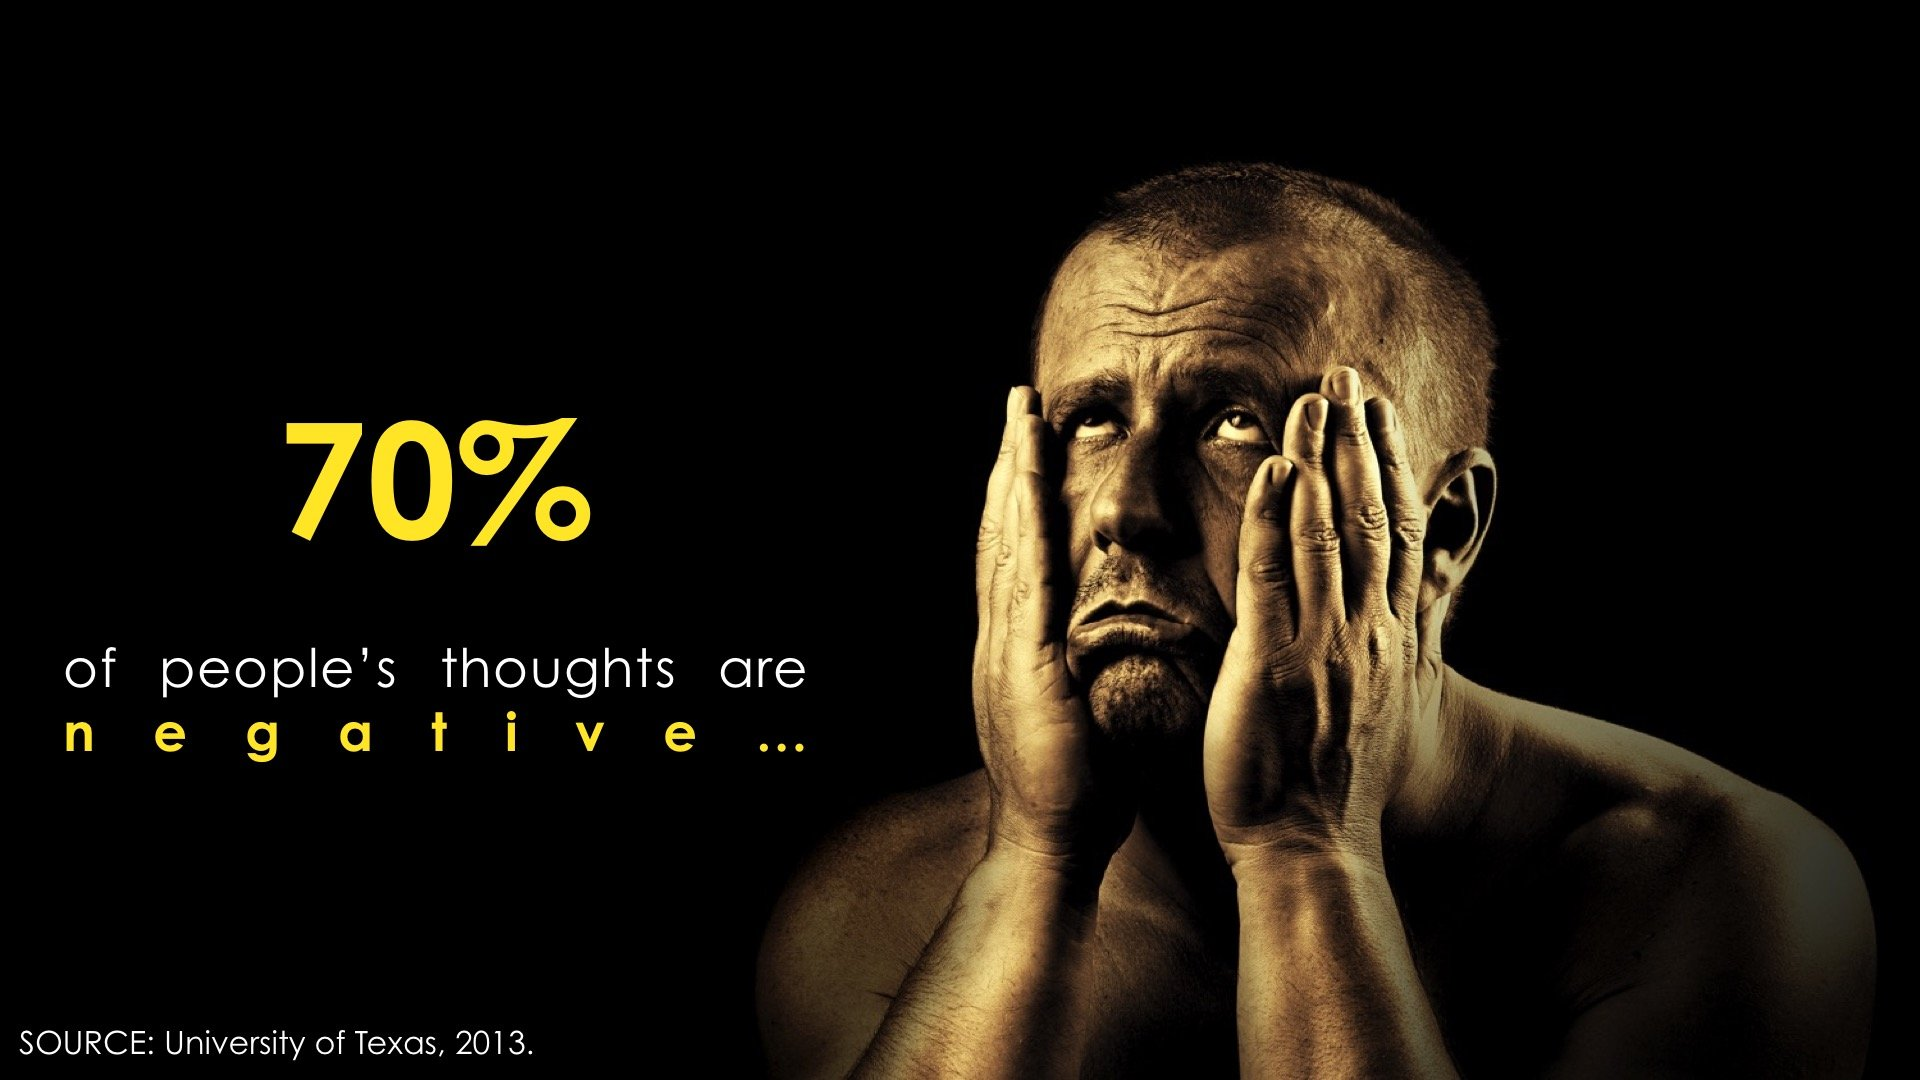 Following a Study at the University of Texas, 70% of people's thoughts are negative...